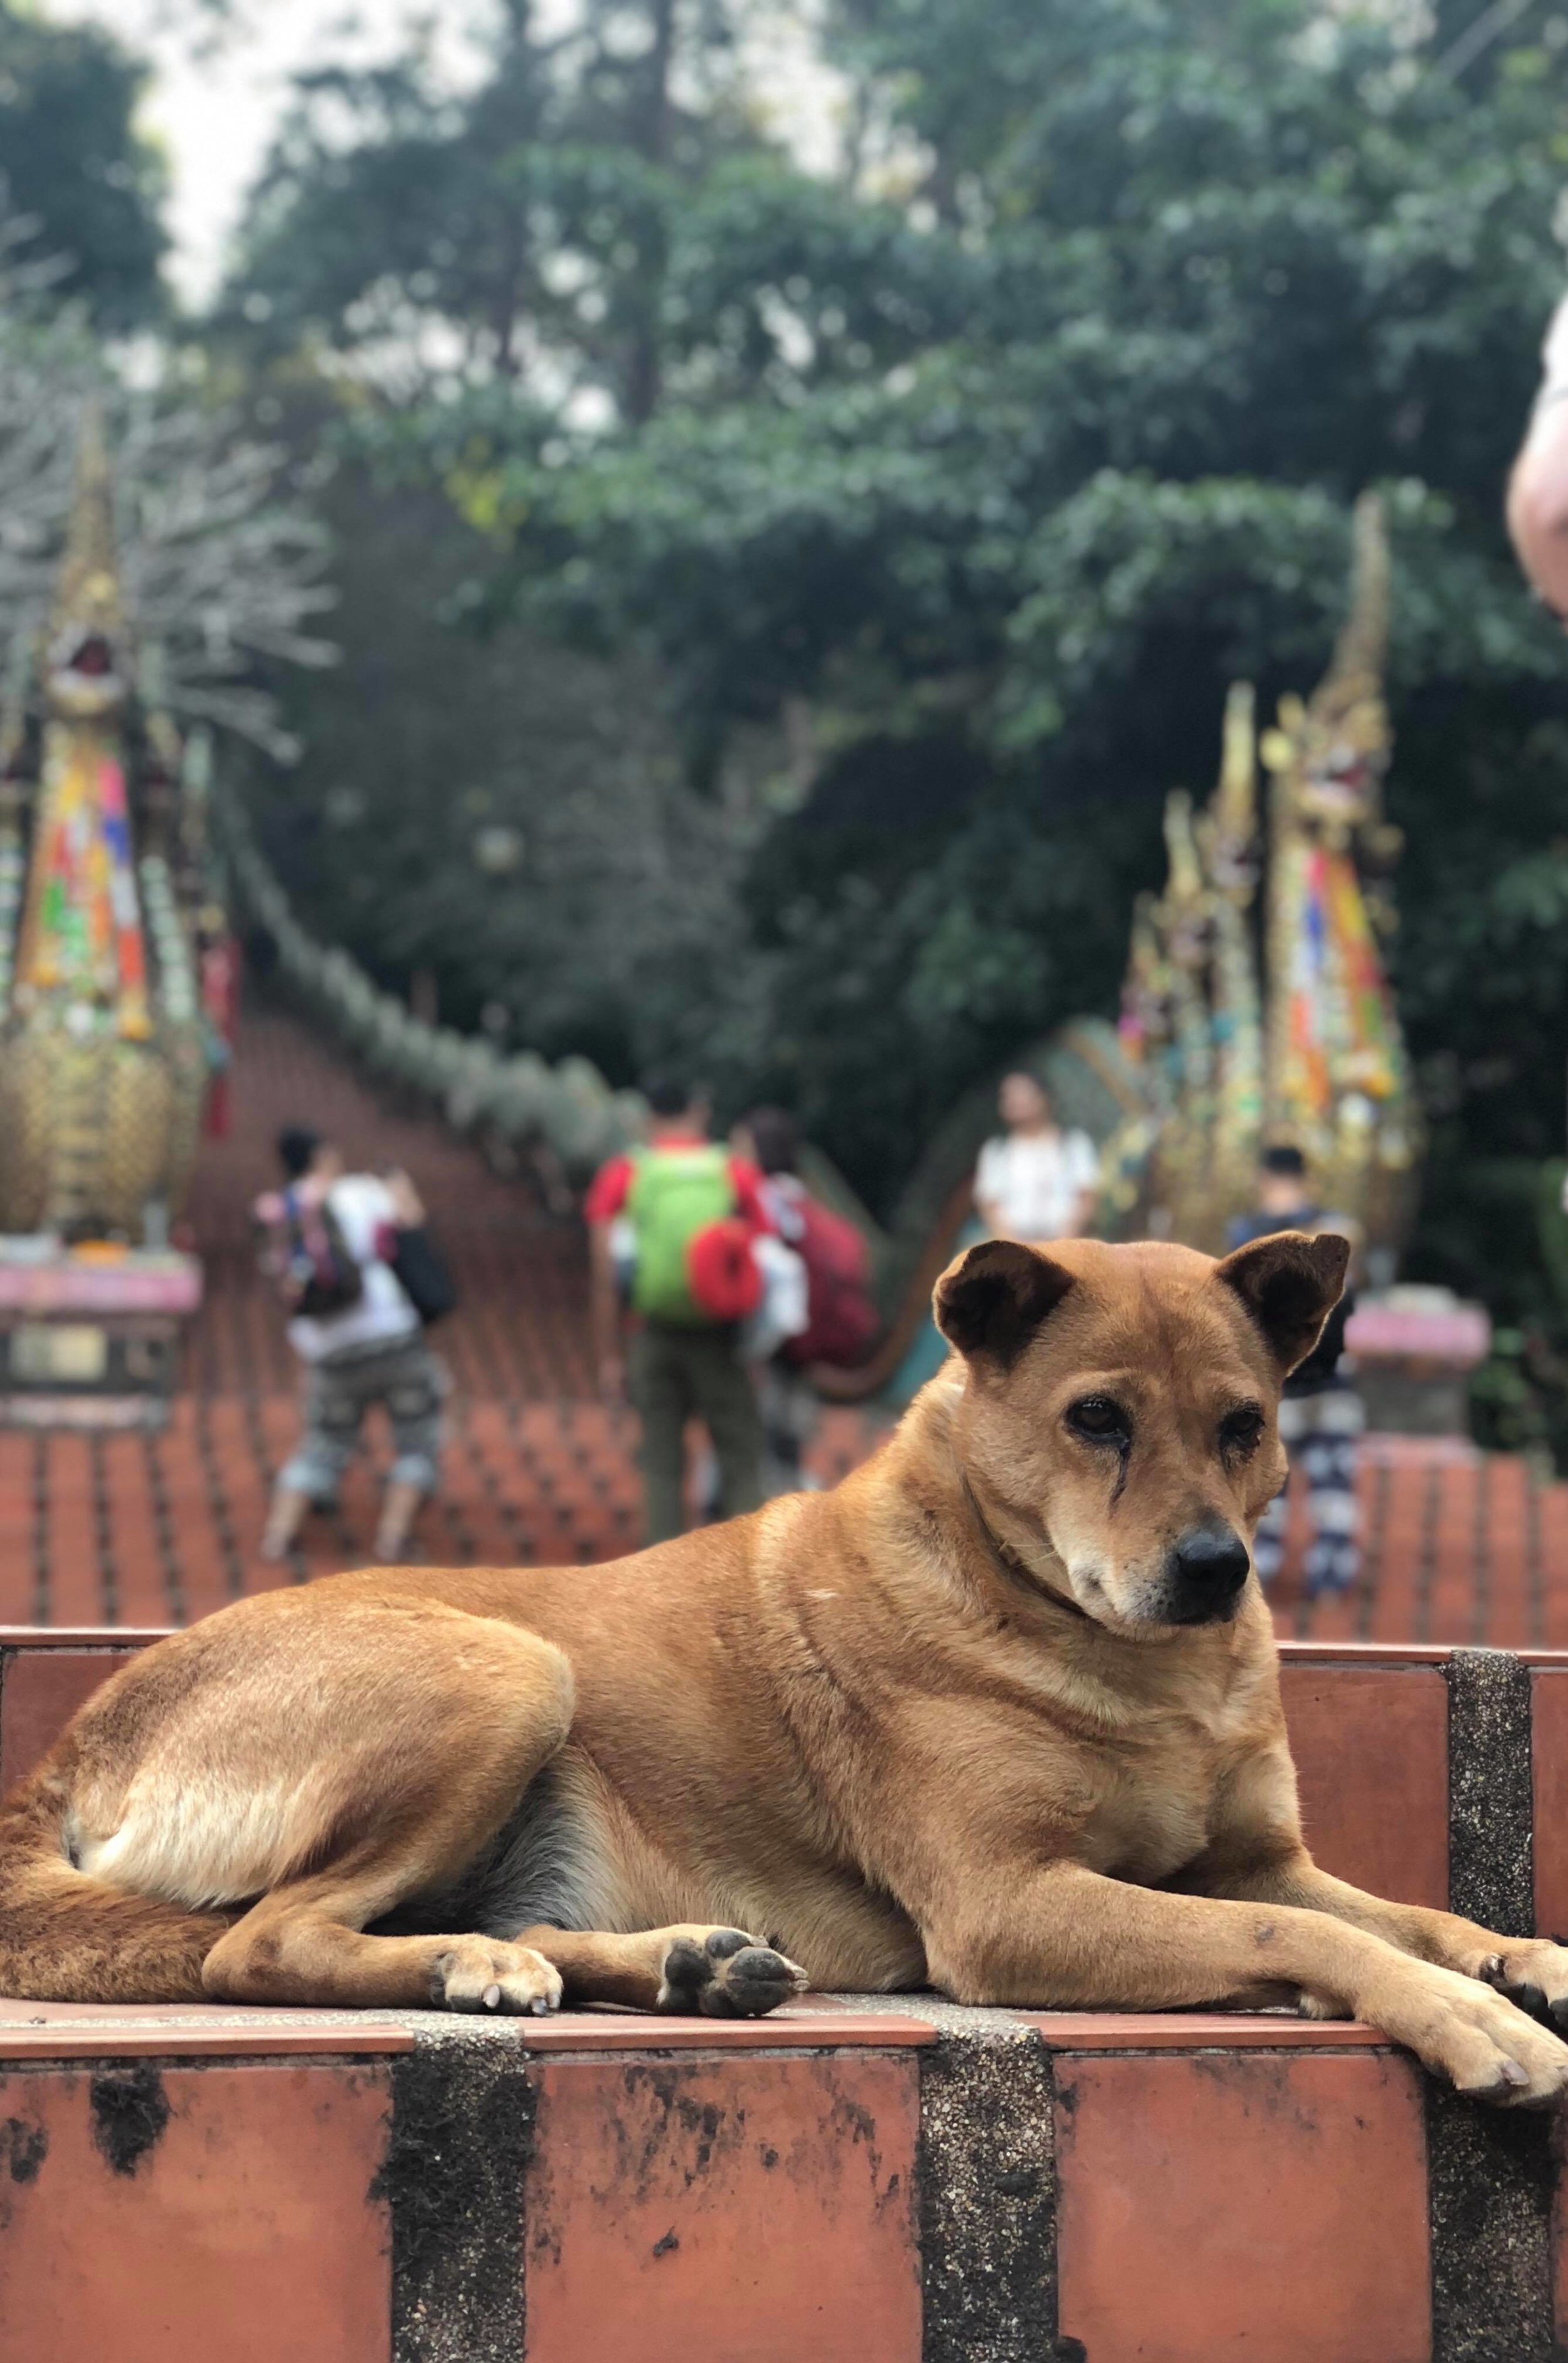 A temple dog lounging in front of the five-headed Naga that guard the stairs of Doi Suthep.  Photo by Heather Marie